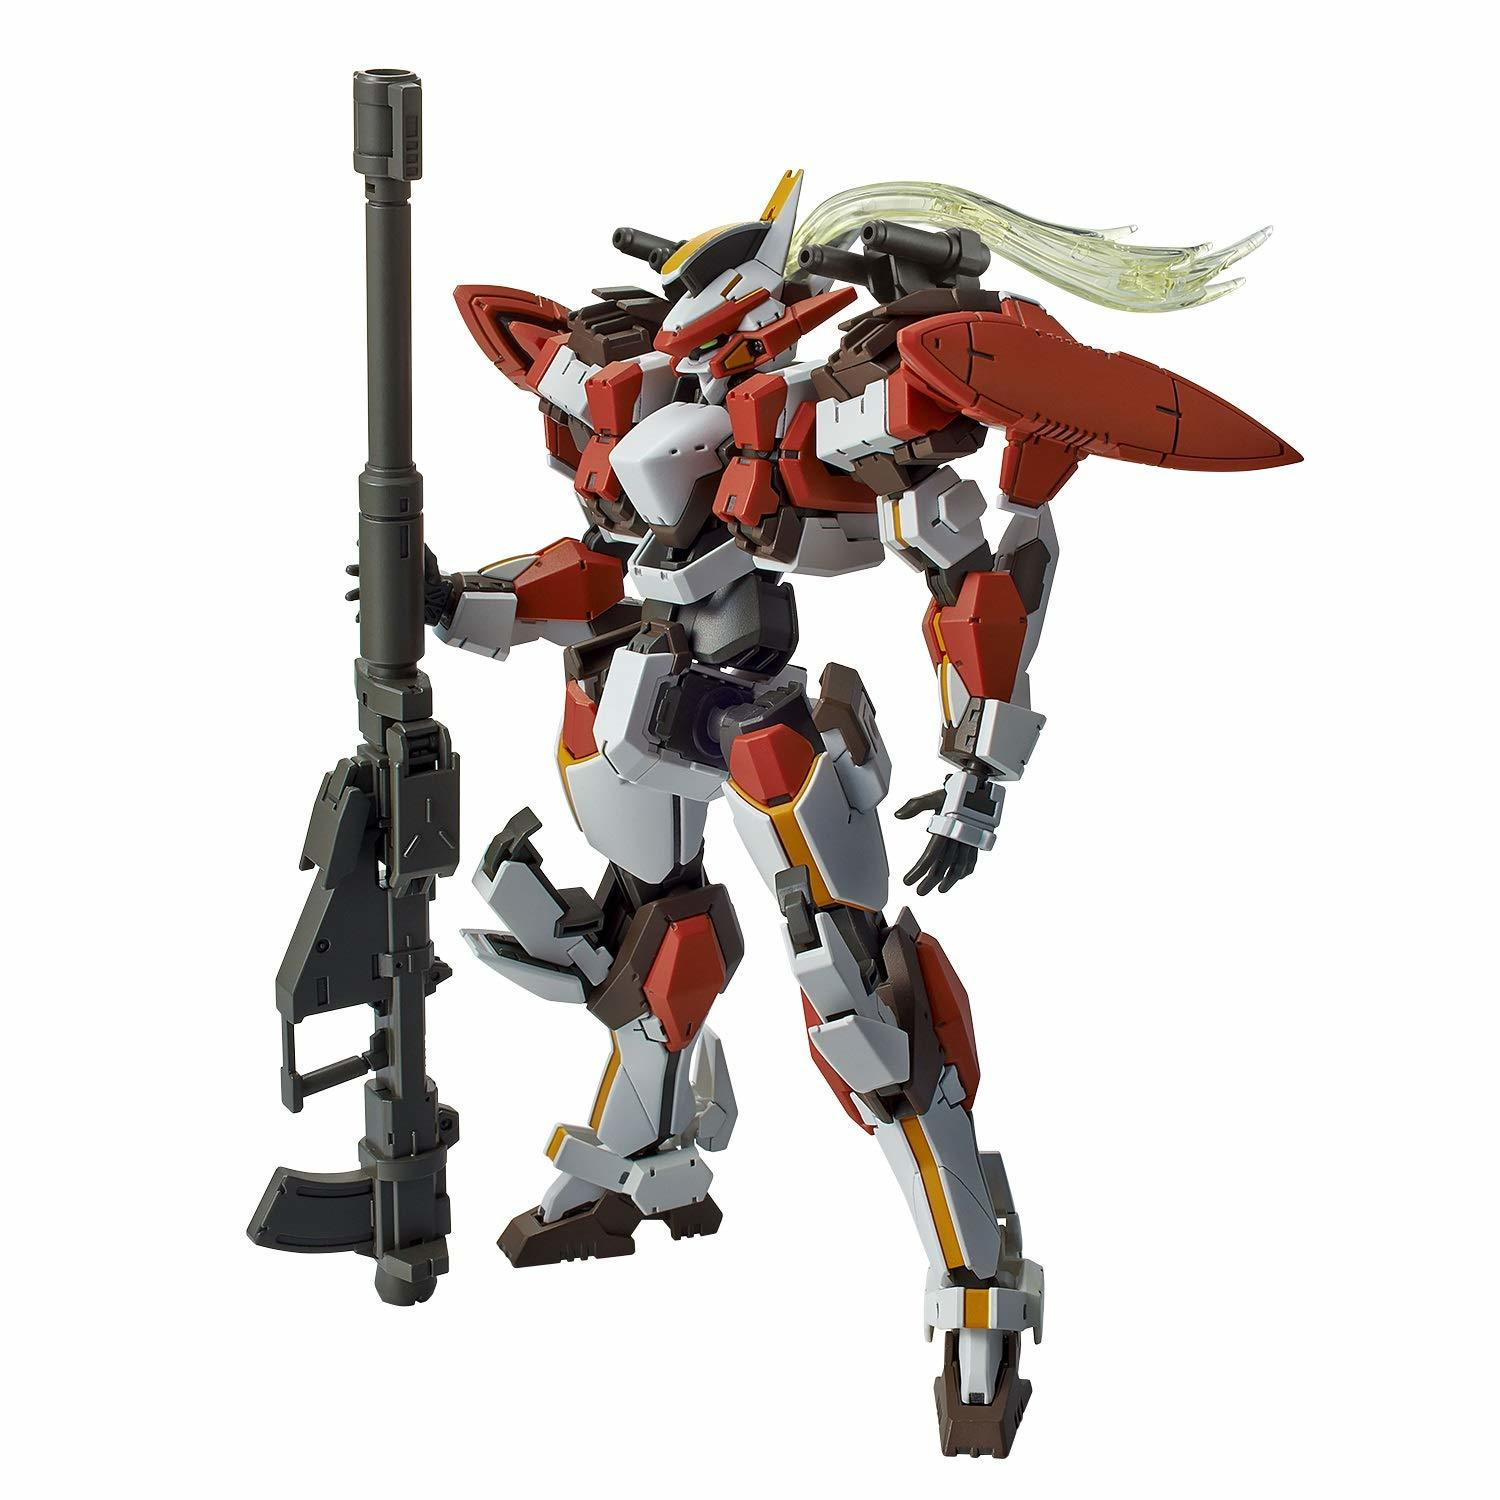 HG 1/60 Full Metal Panic: HG Laevatein Ver.IV - Model kit image